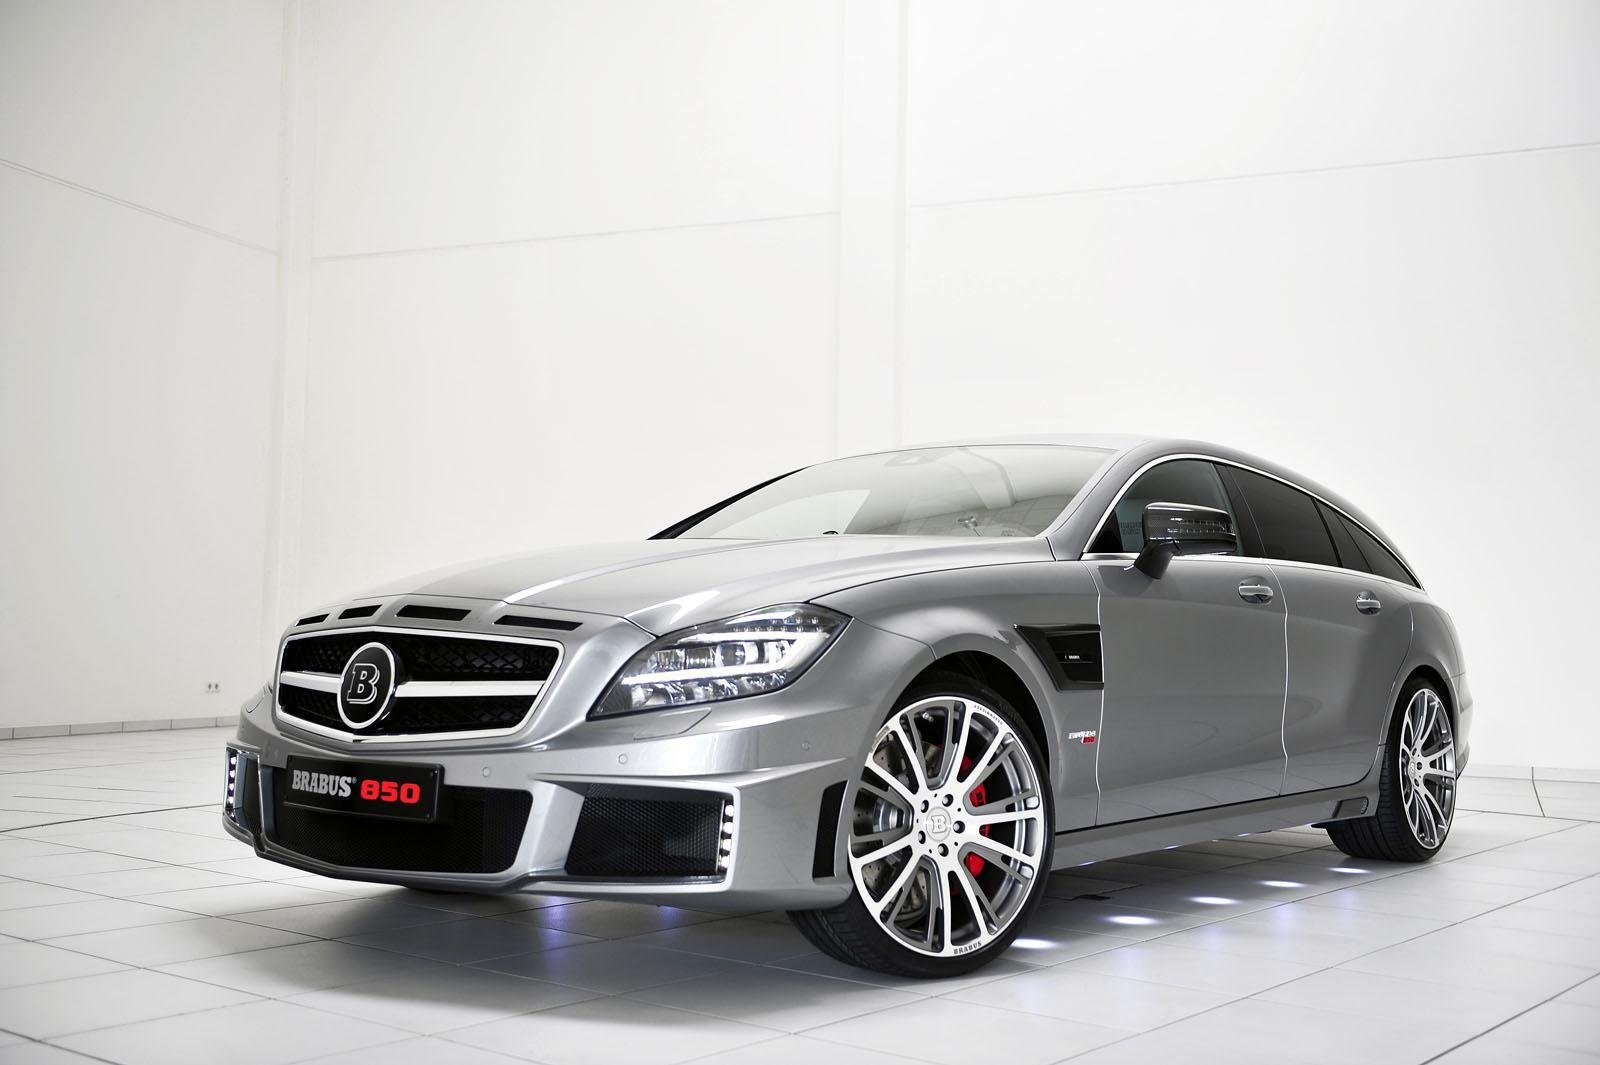 2013 mercedes benz cls 63 amg 4matic shooting brake 850. Black Bedroom Furniture Sets. Home Design Ideas